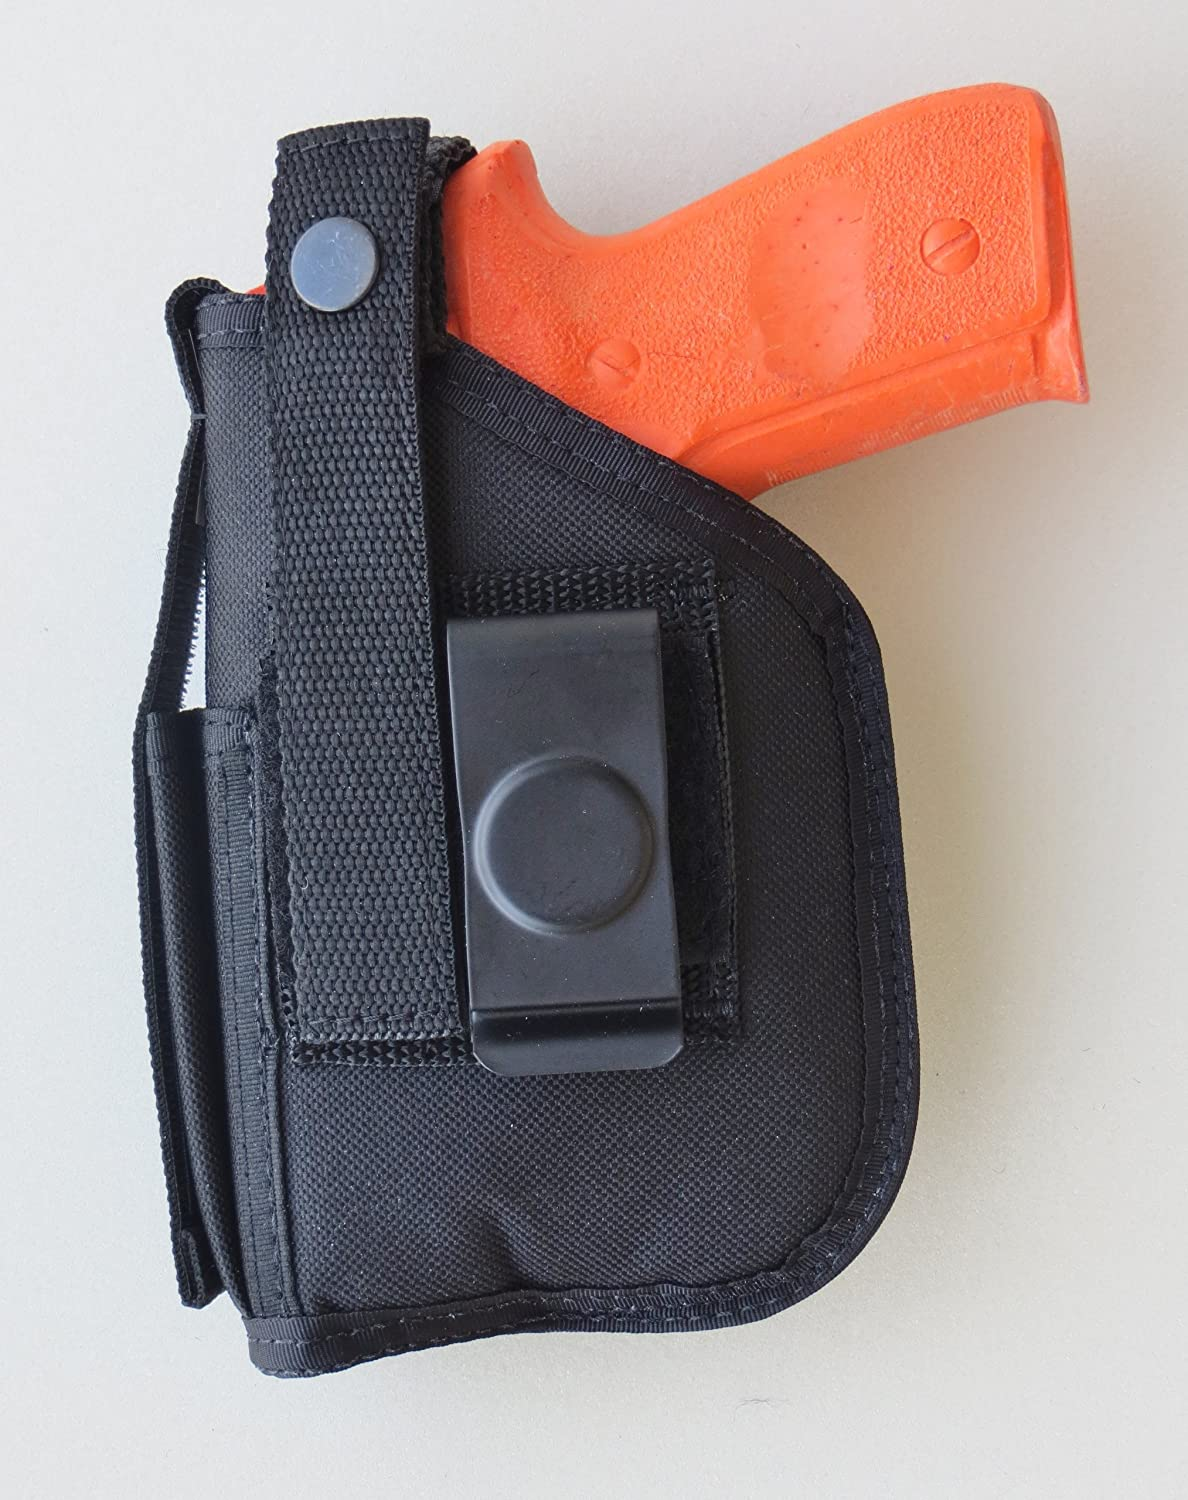 Holster for Glock 17 22 4 years warranty 31 Laser 37 Mounted with depot Underbarrel